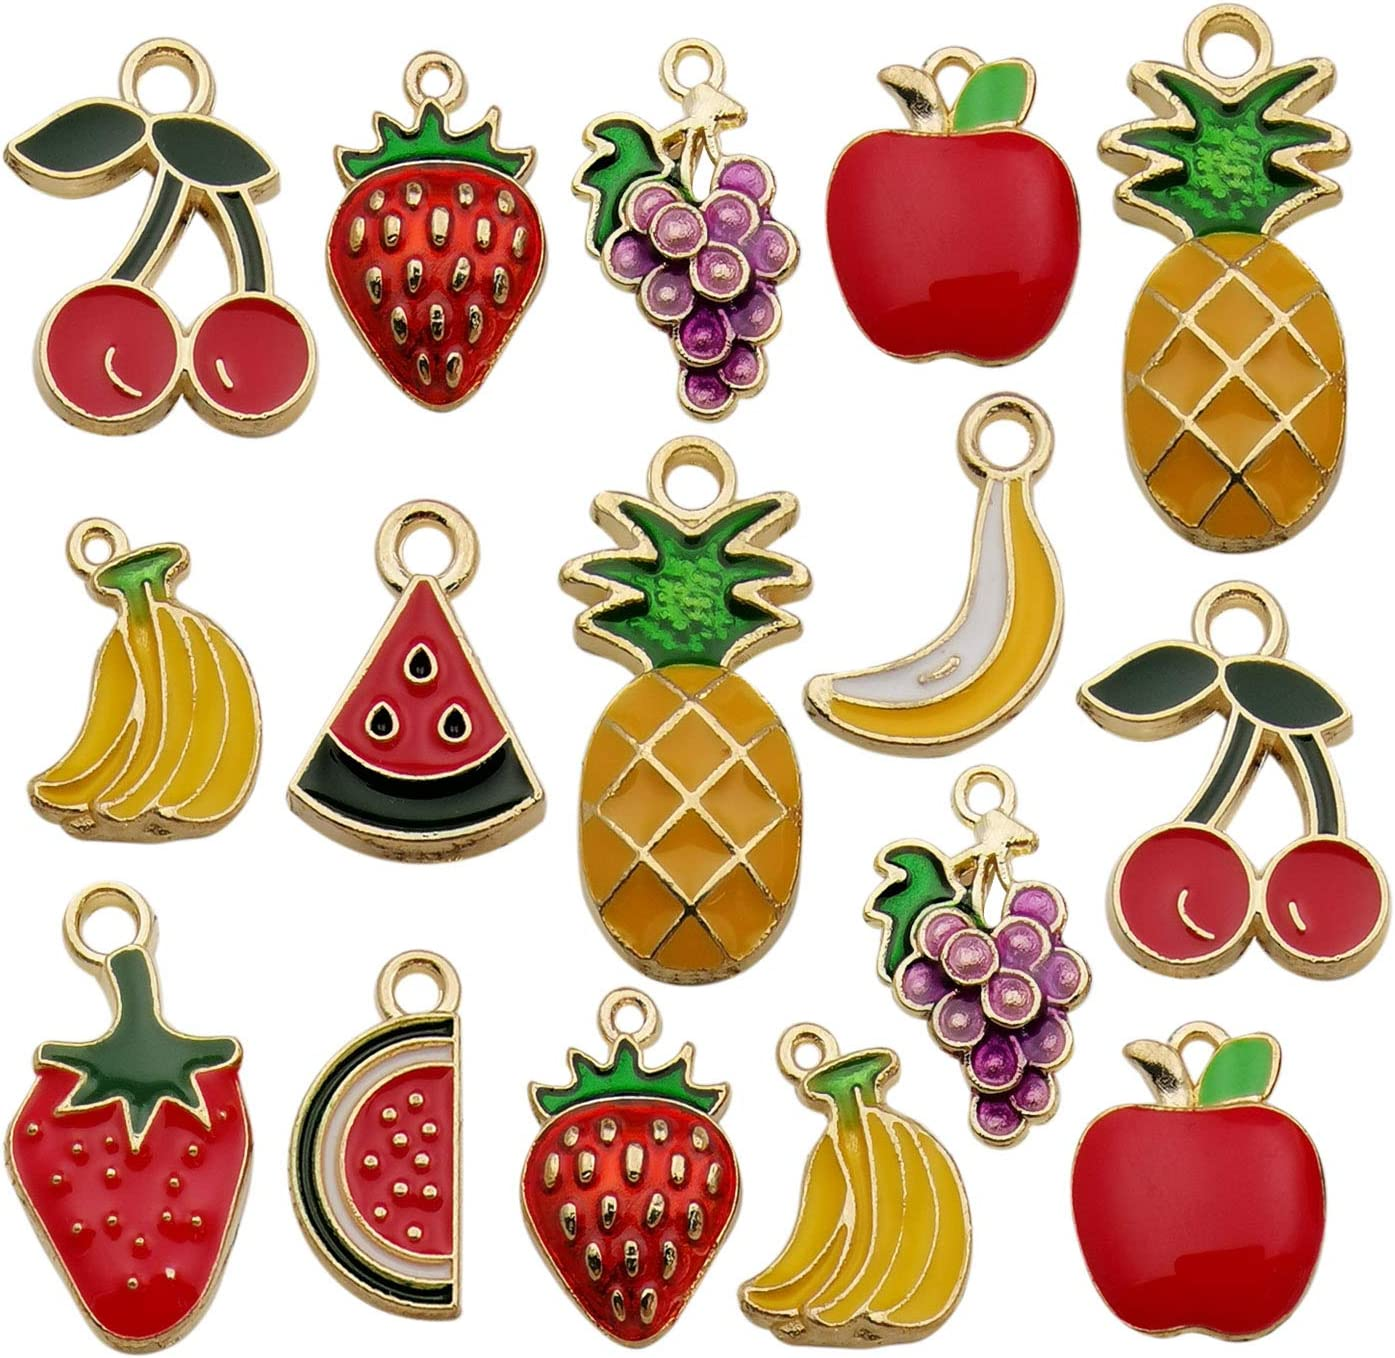 Youdiyla 30pcs Assorted Enamel Plated Gold Fruit Banana Grape Apple Charm for Jewelry Making Necklace Bracelet Ankle Earring DIY Findings (HM299)